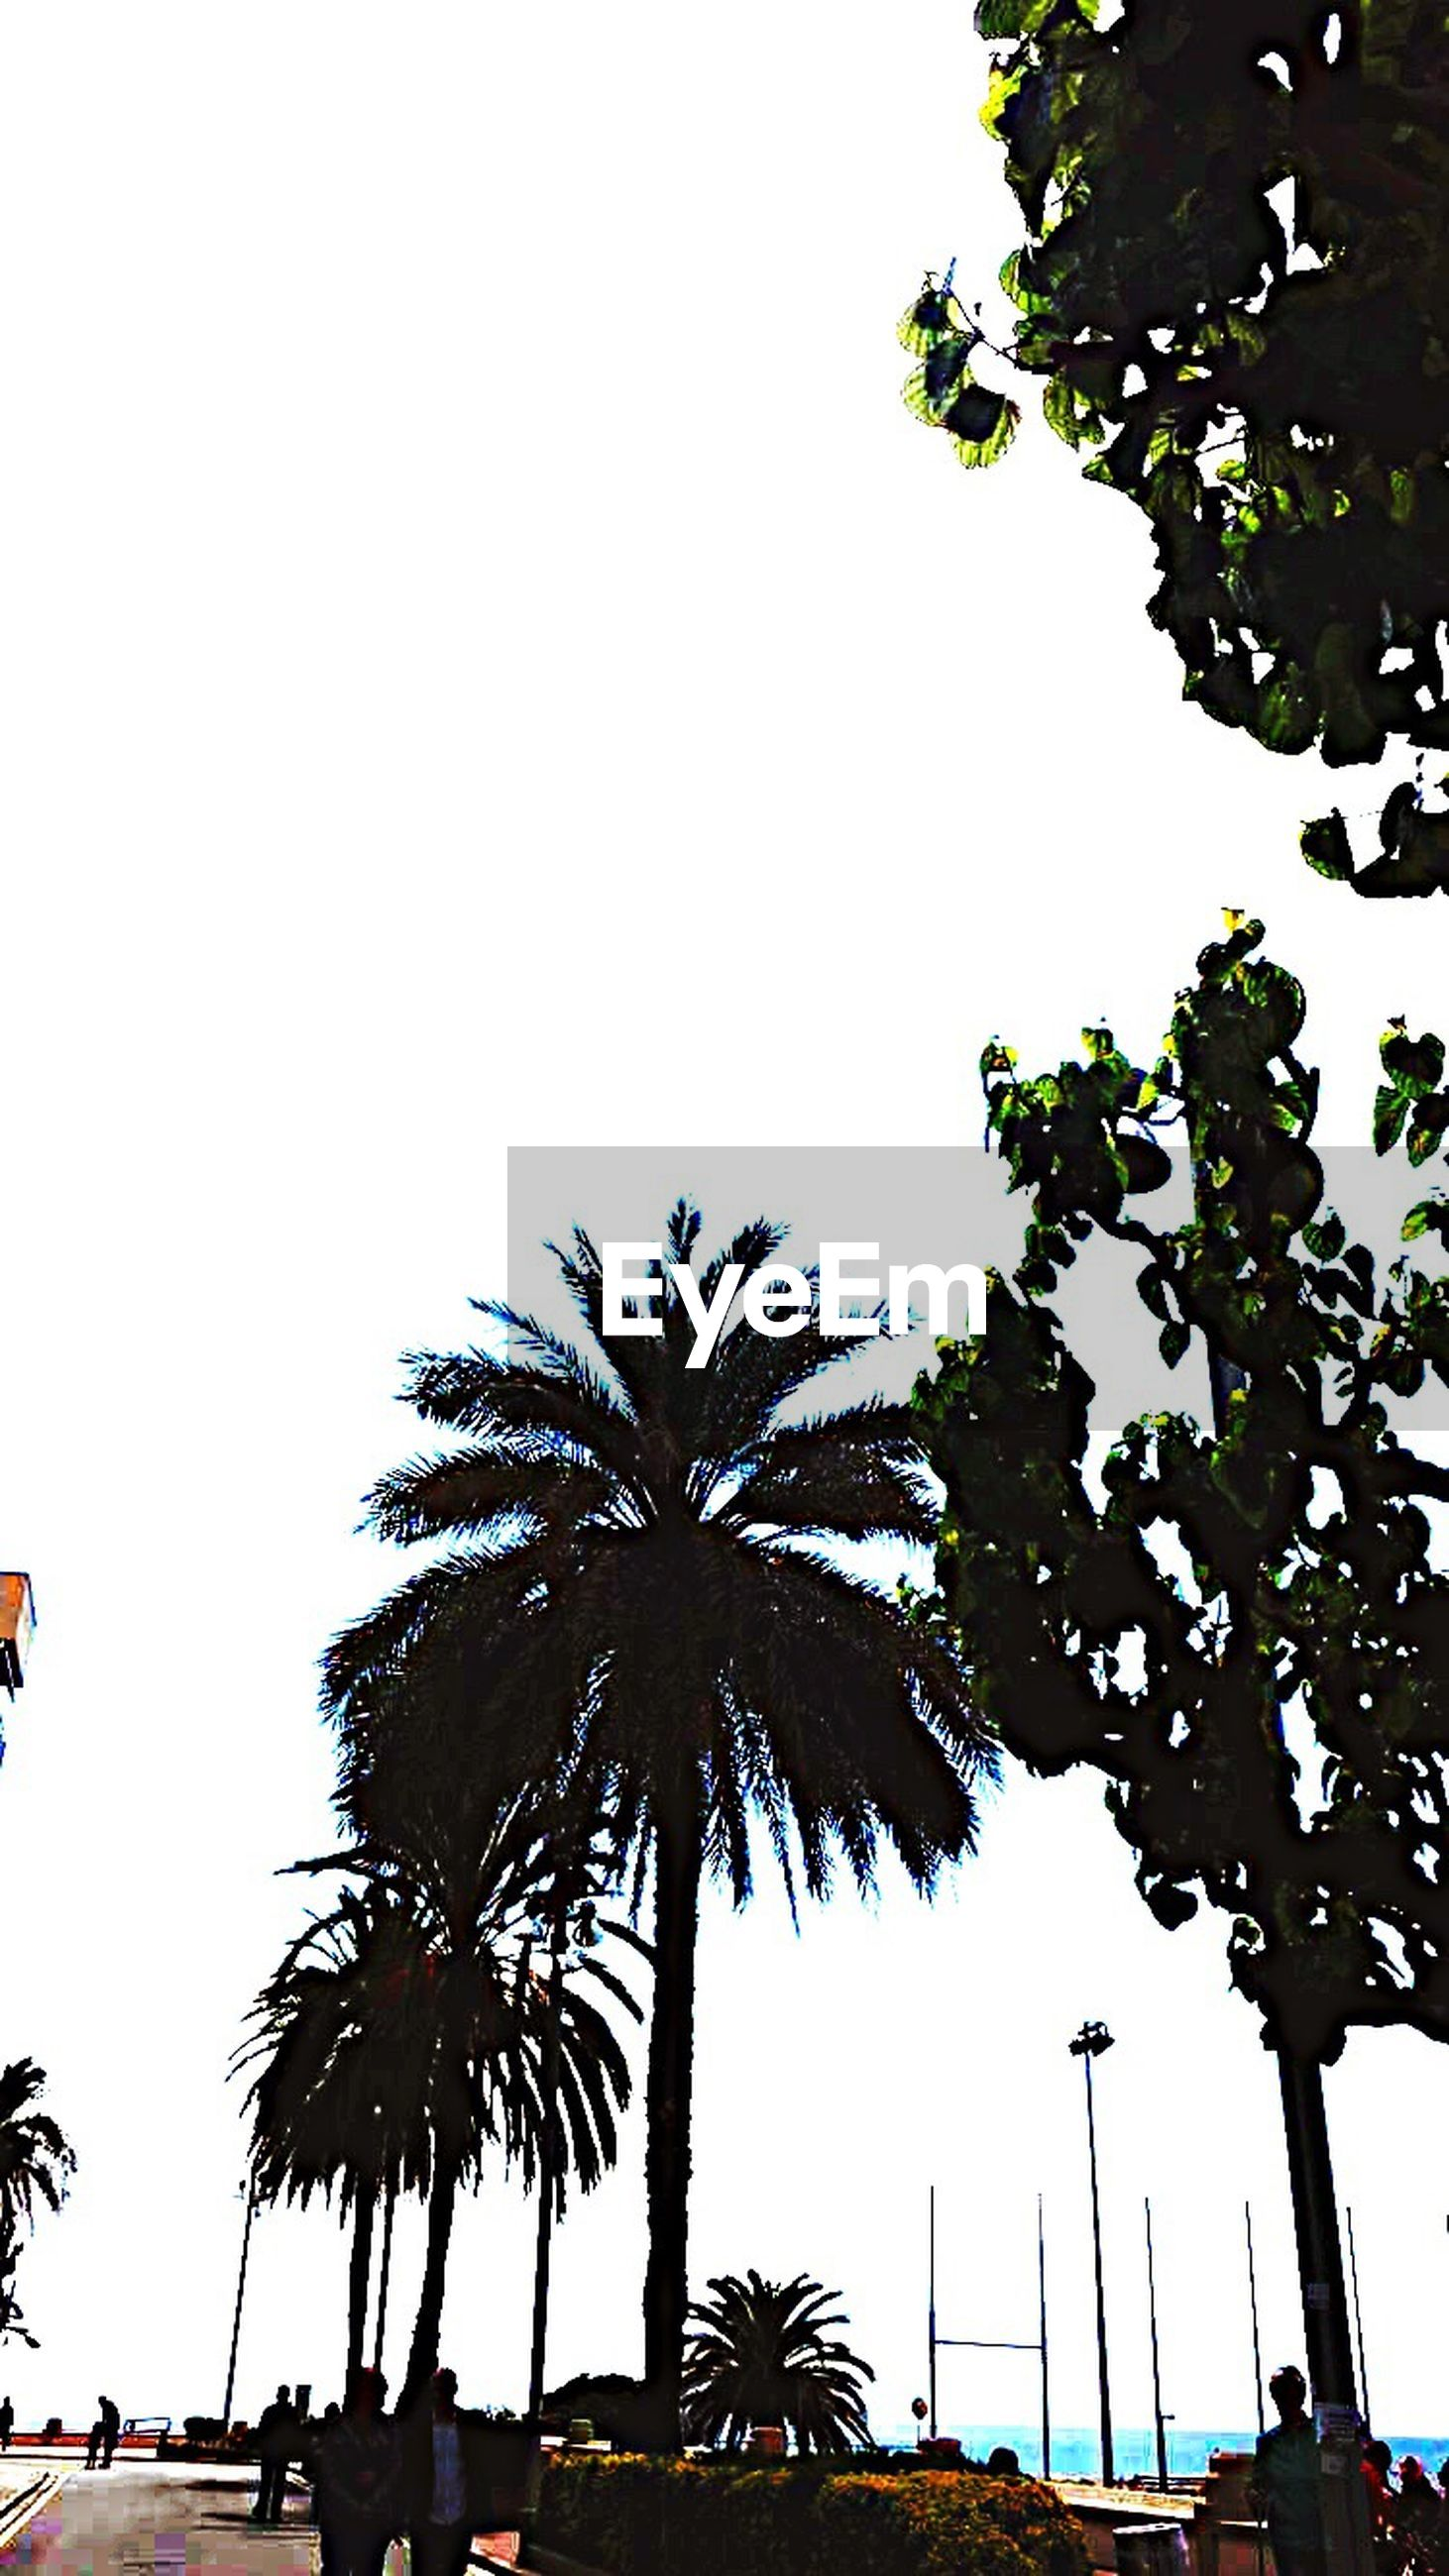 tree, clear sky, palm tree, transportation, car, land vehicle, mode of transport, low angle view, growth, copy space, road, street light, street, nature, branch, outdoors, day, tree trunk, sky, incidental people